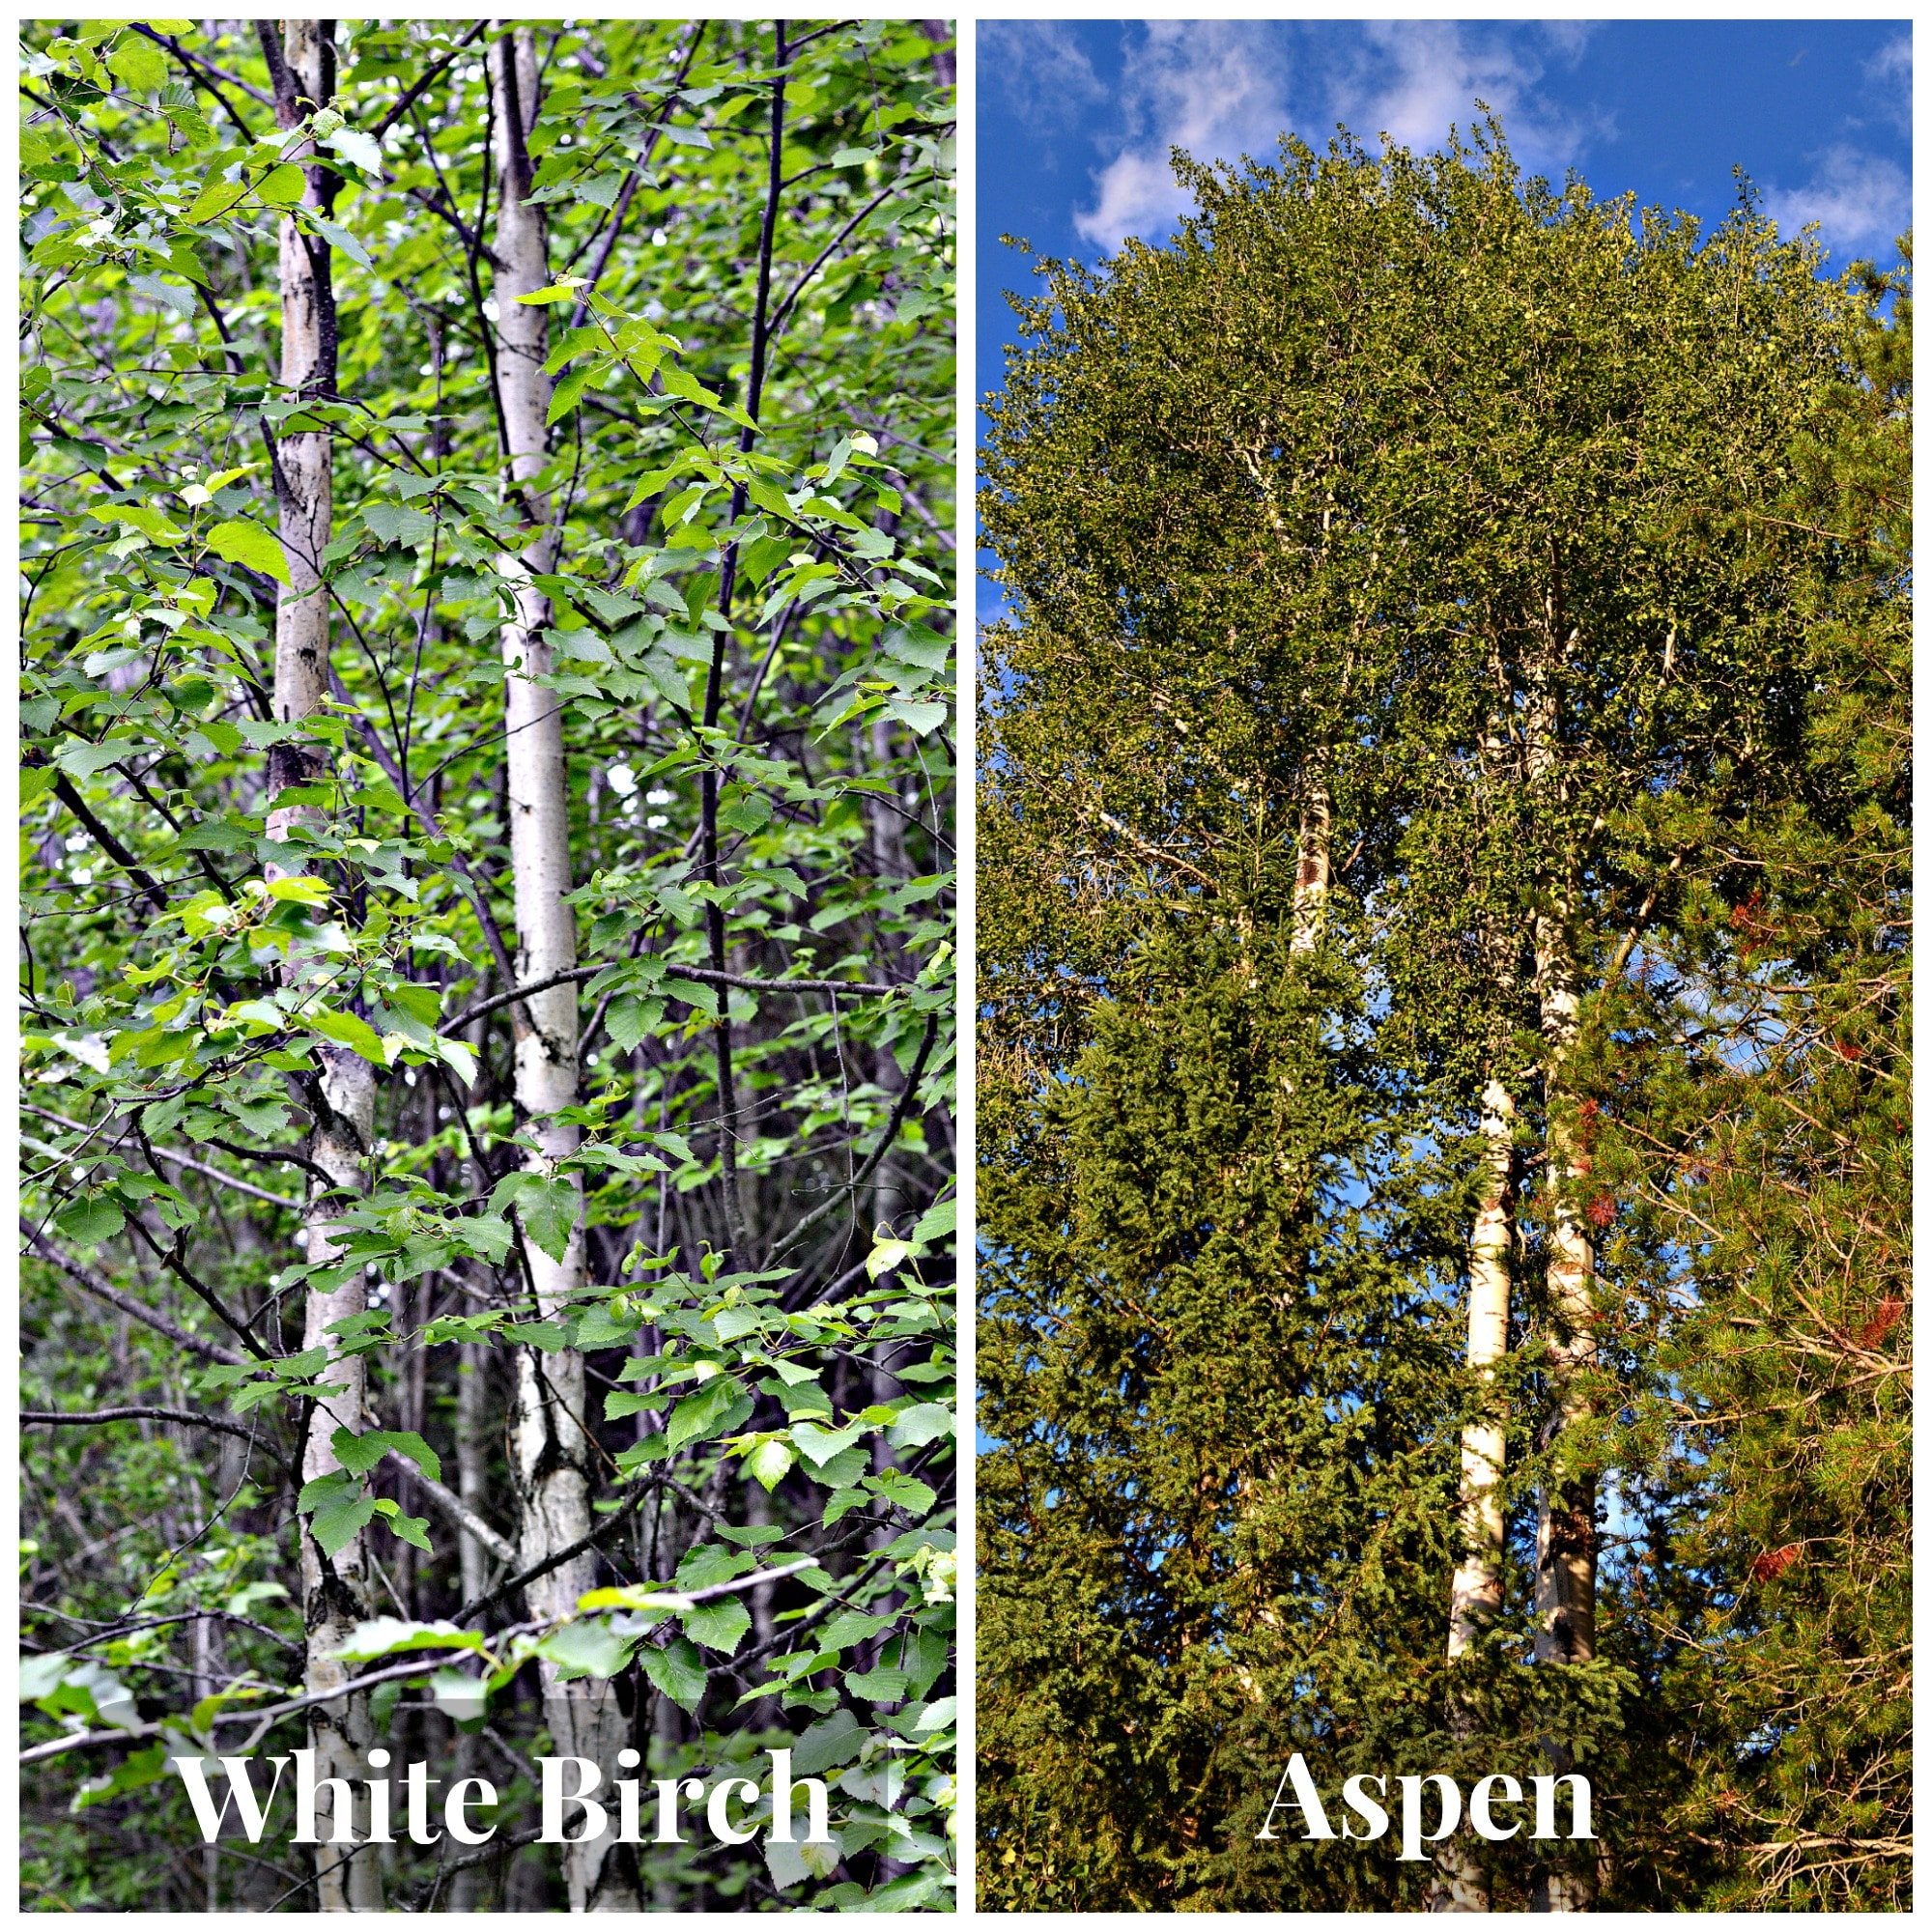 A comparison of Birch (left) and Aspen (right)